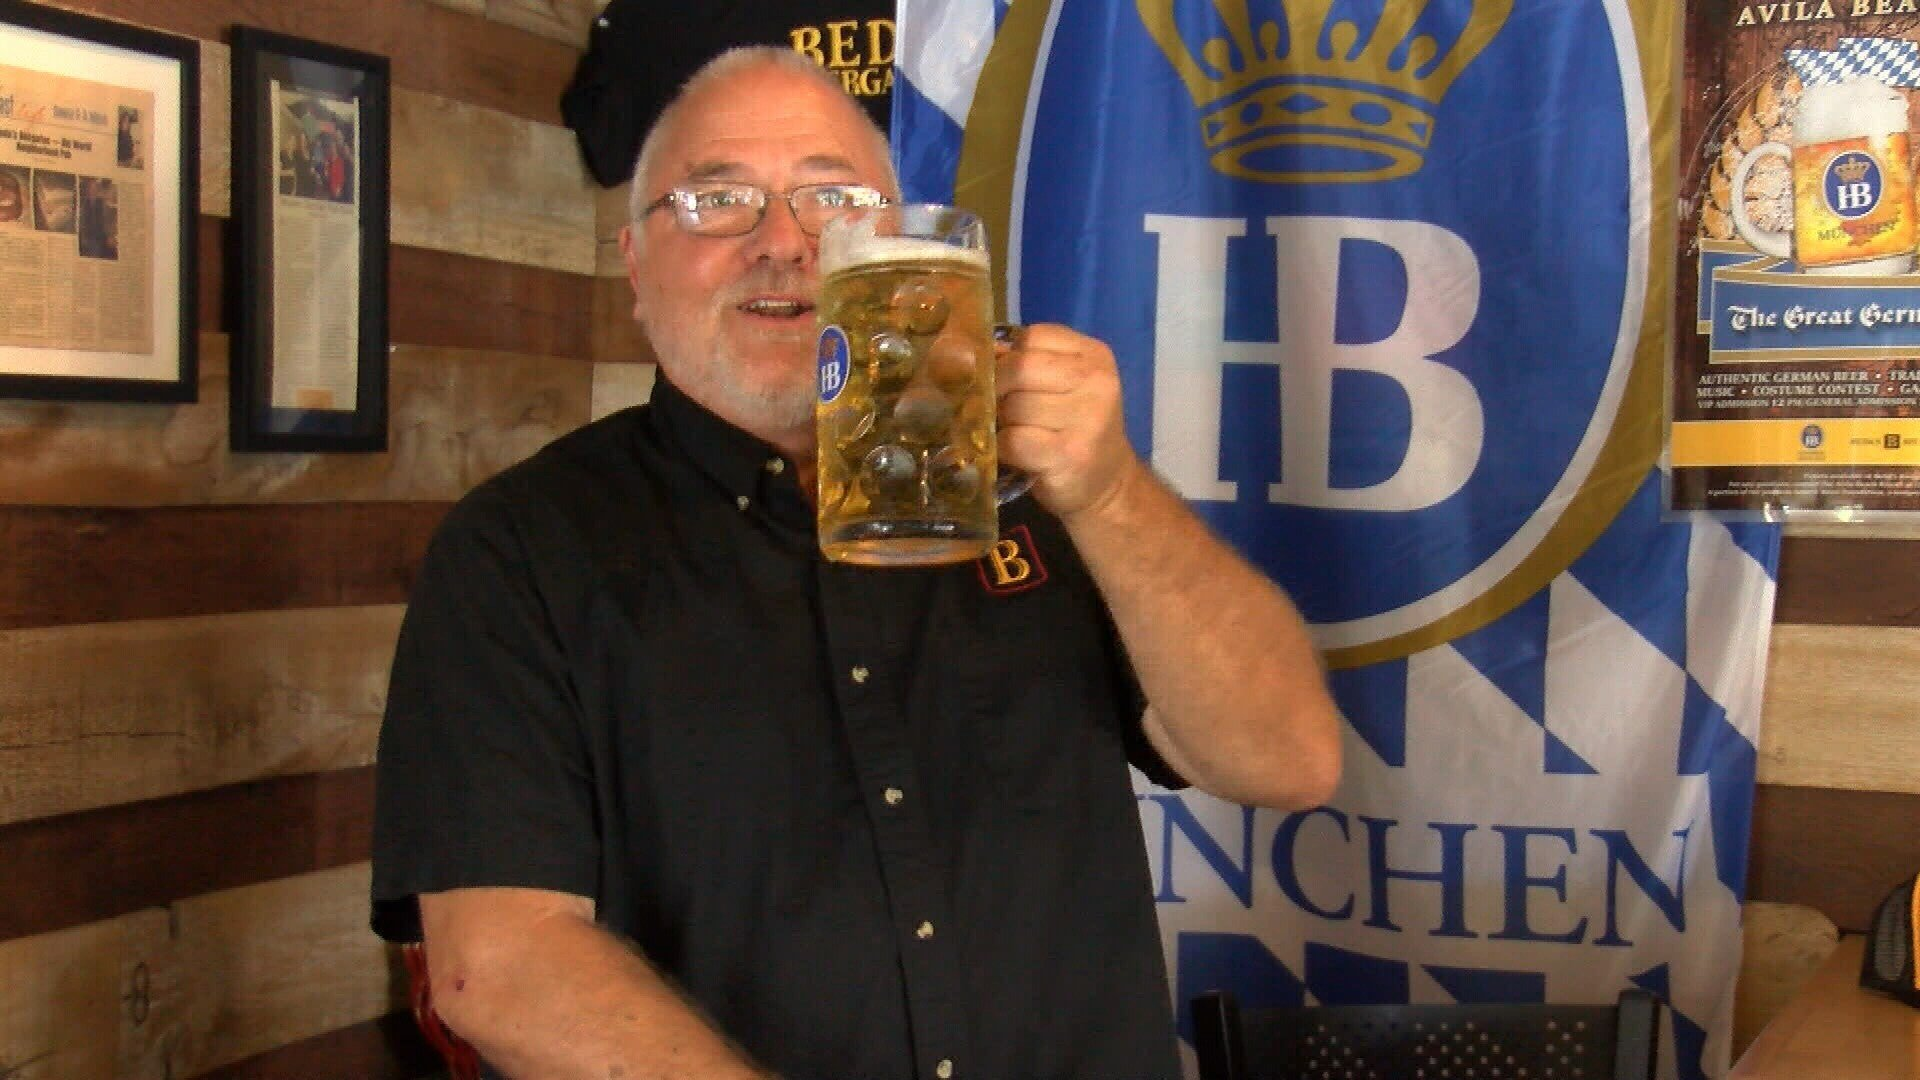 Beda Schmidthues, owner of Beda's Biergarten, shares his German meatball recipe to kick off Oktoberfest!